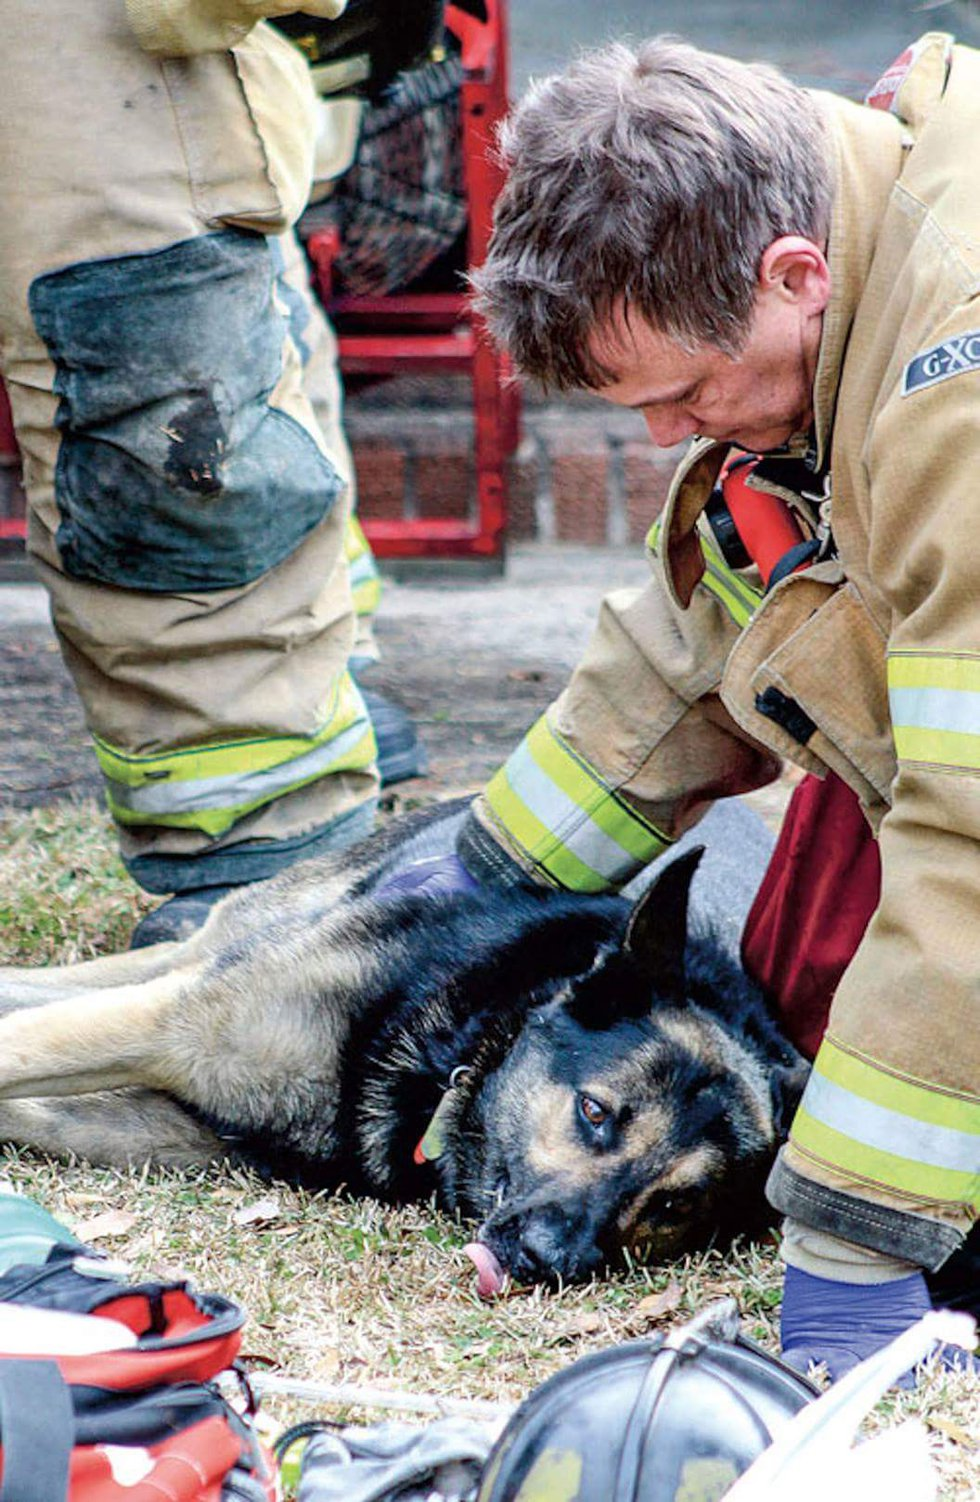 This is Adler, a German Shepherd saved after a house fire. The pup was barely alive with fire...